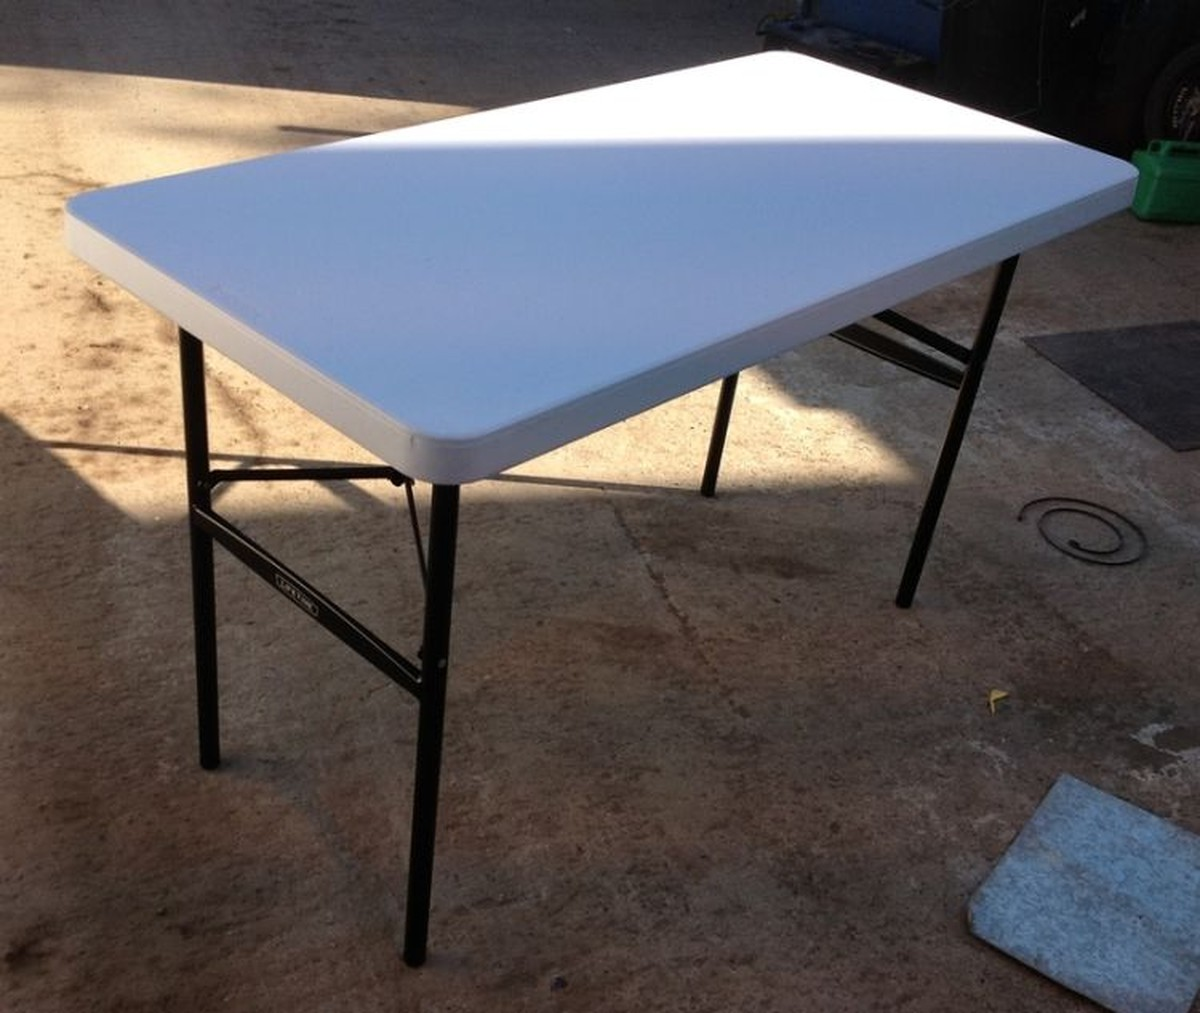 Plastic Table And Chairs For Sale Secondhand Chairs And Tables Folding Tables 1700x